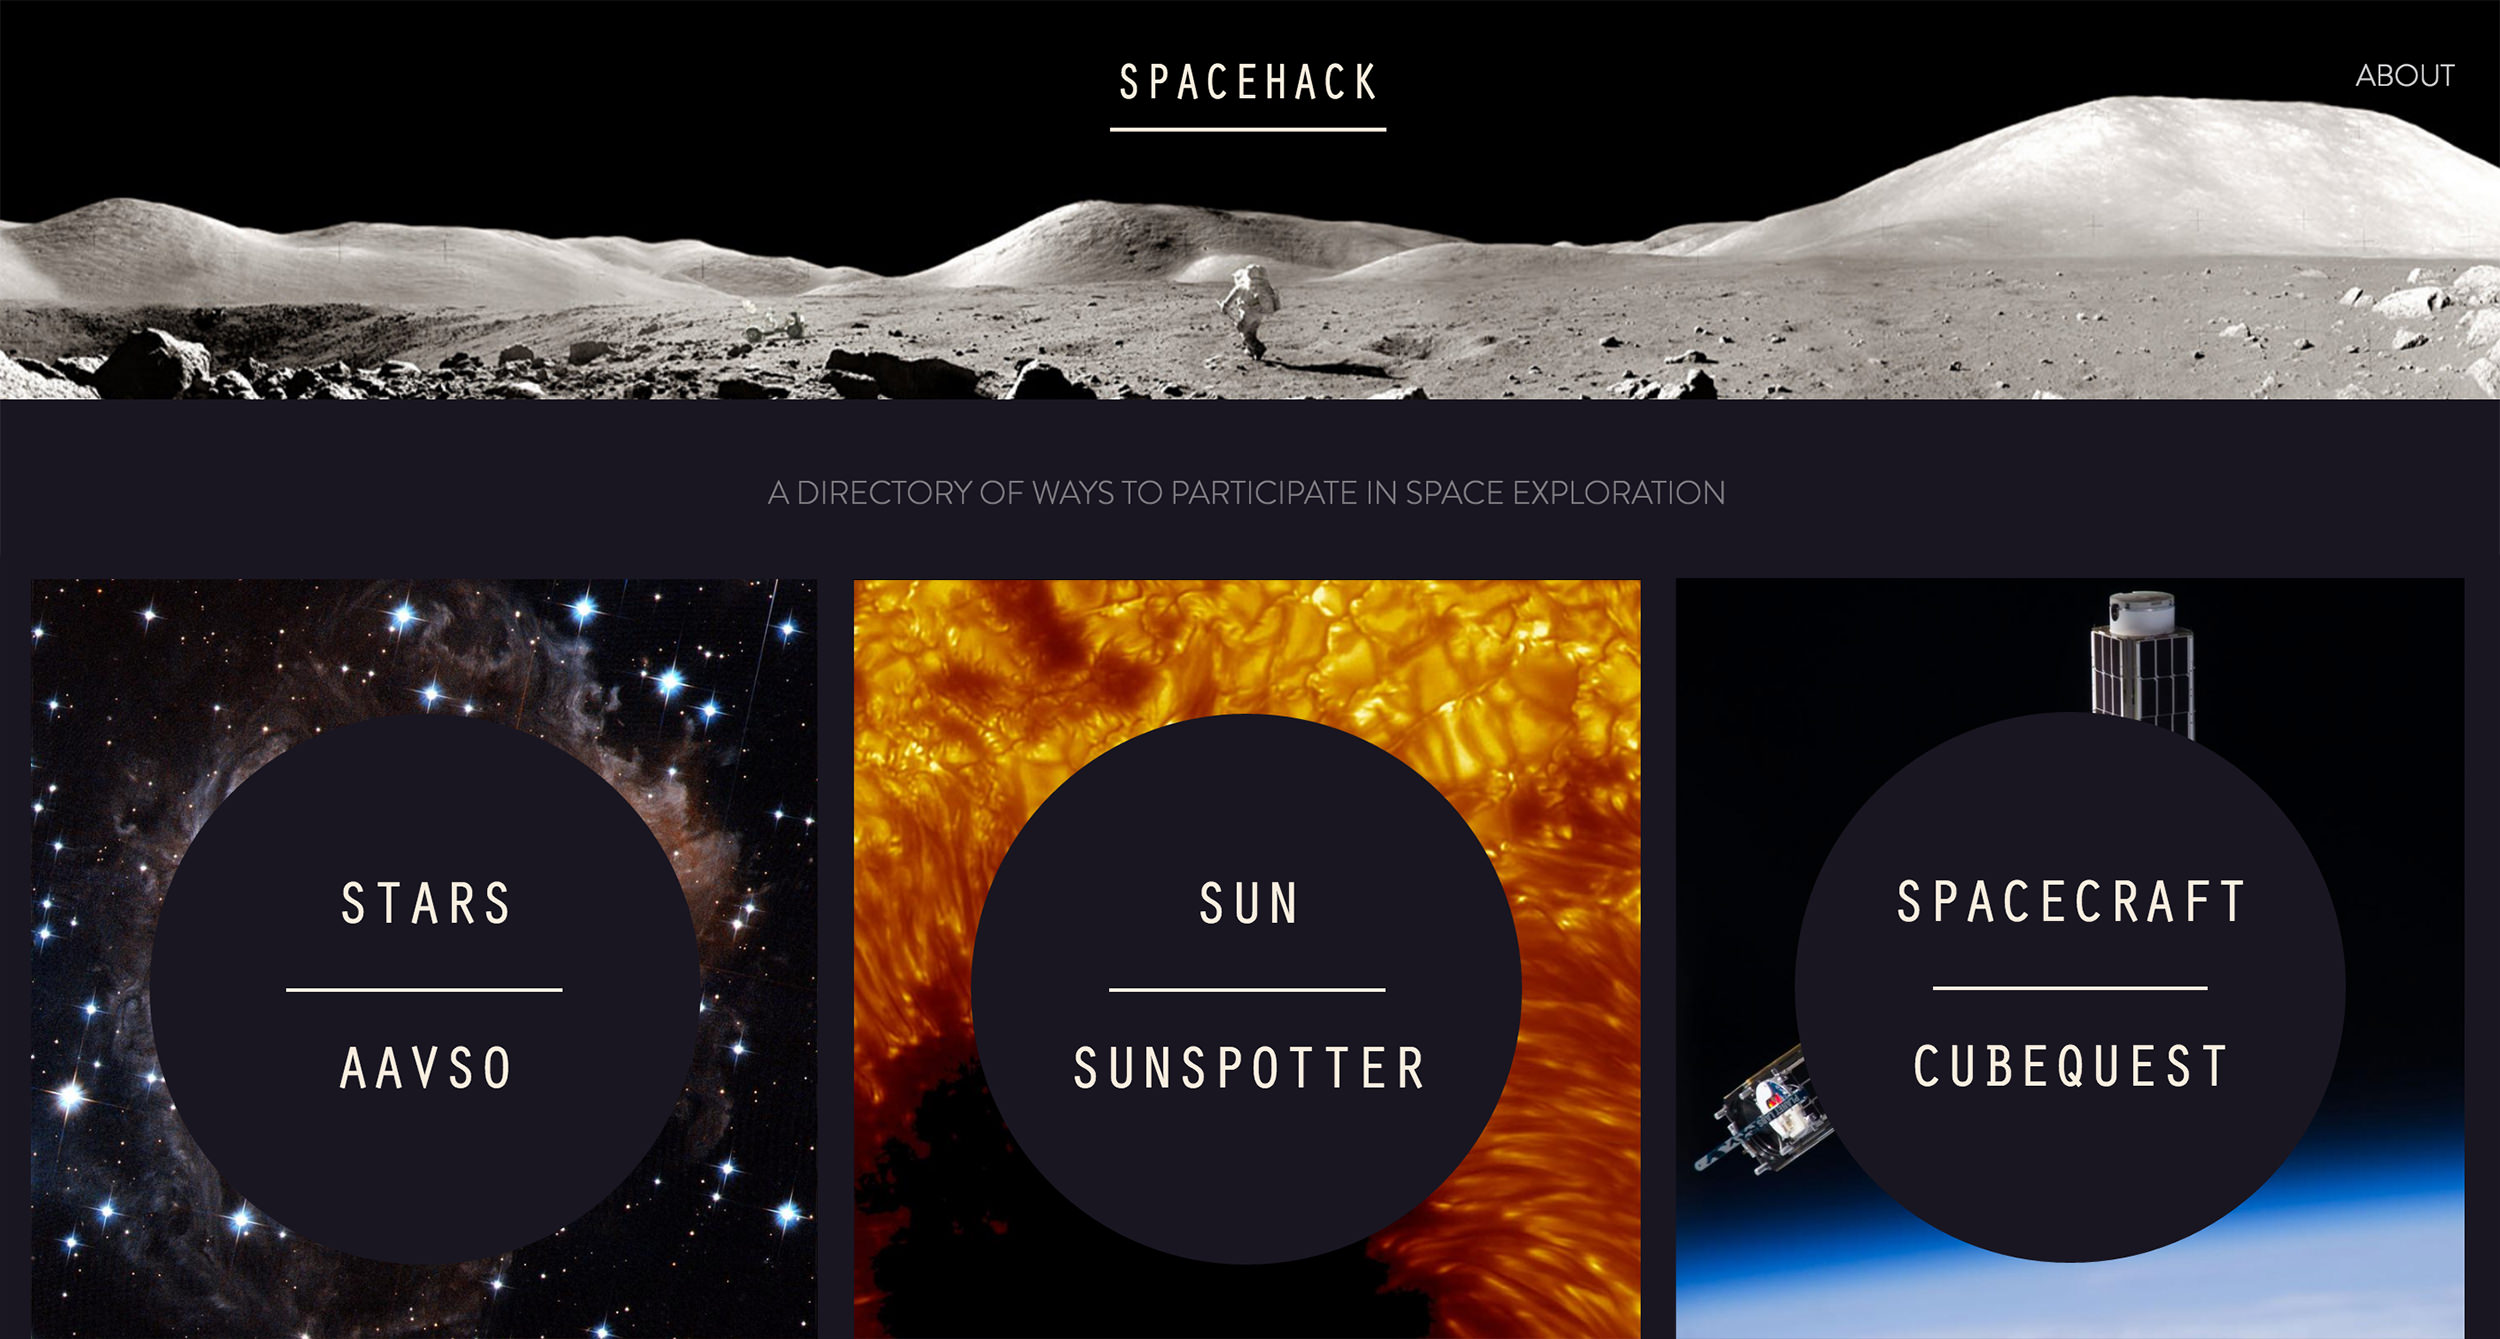 Spacehack.org